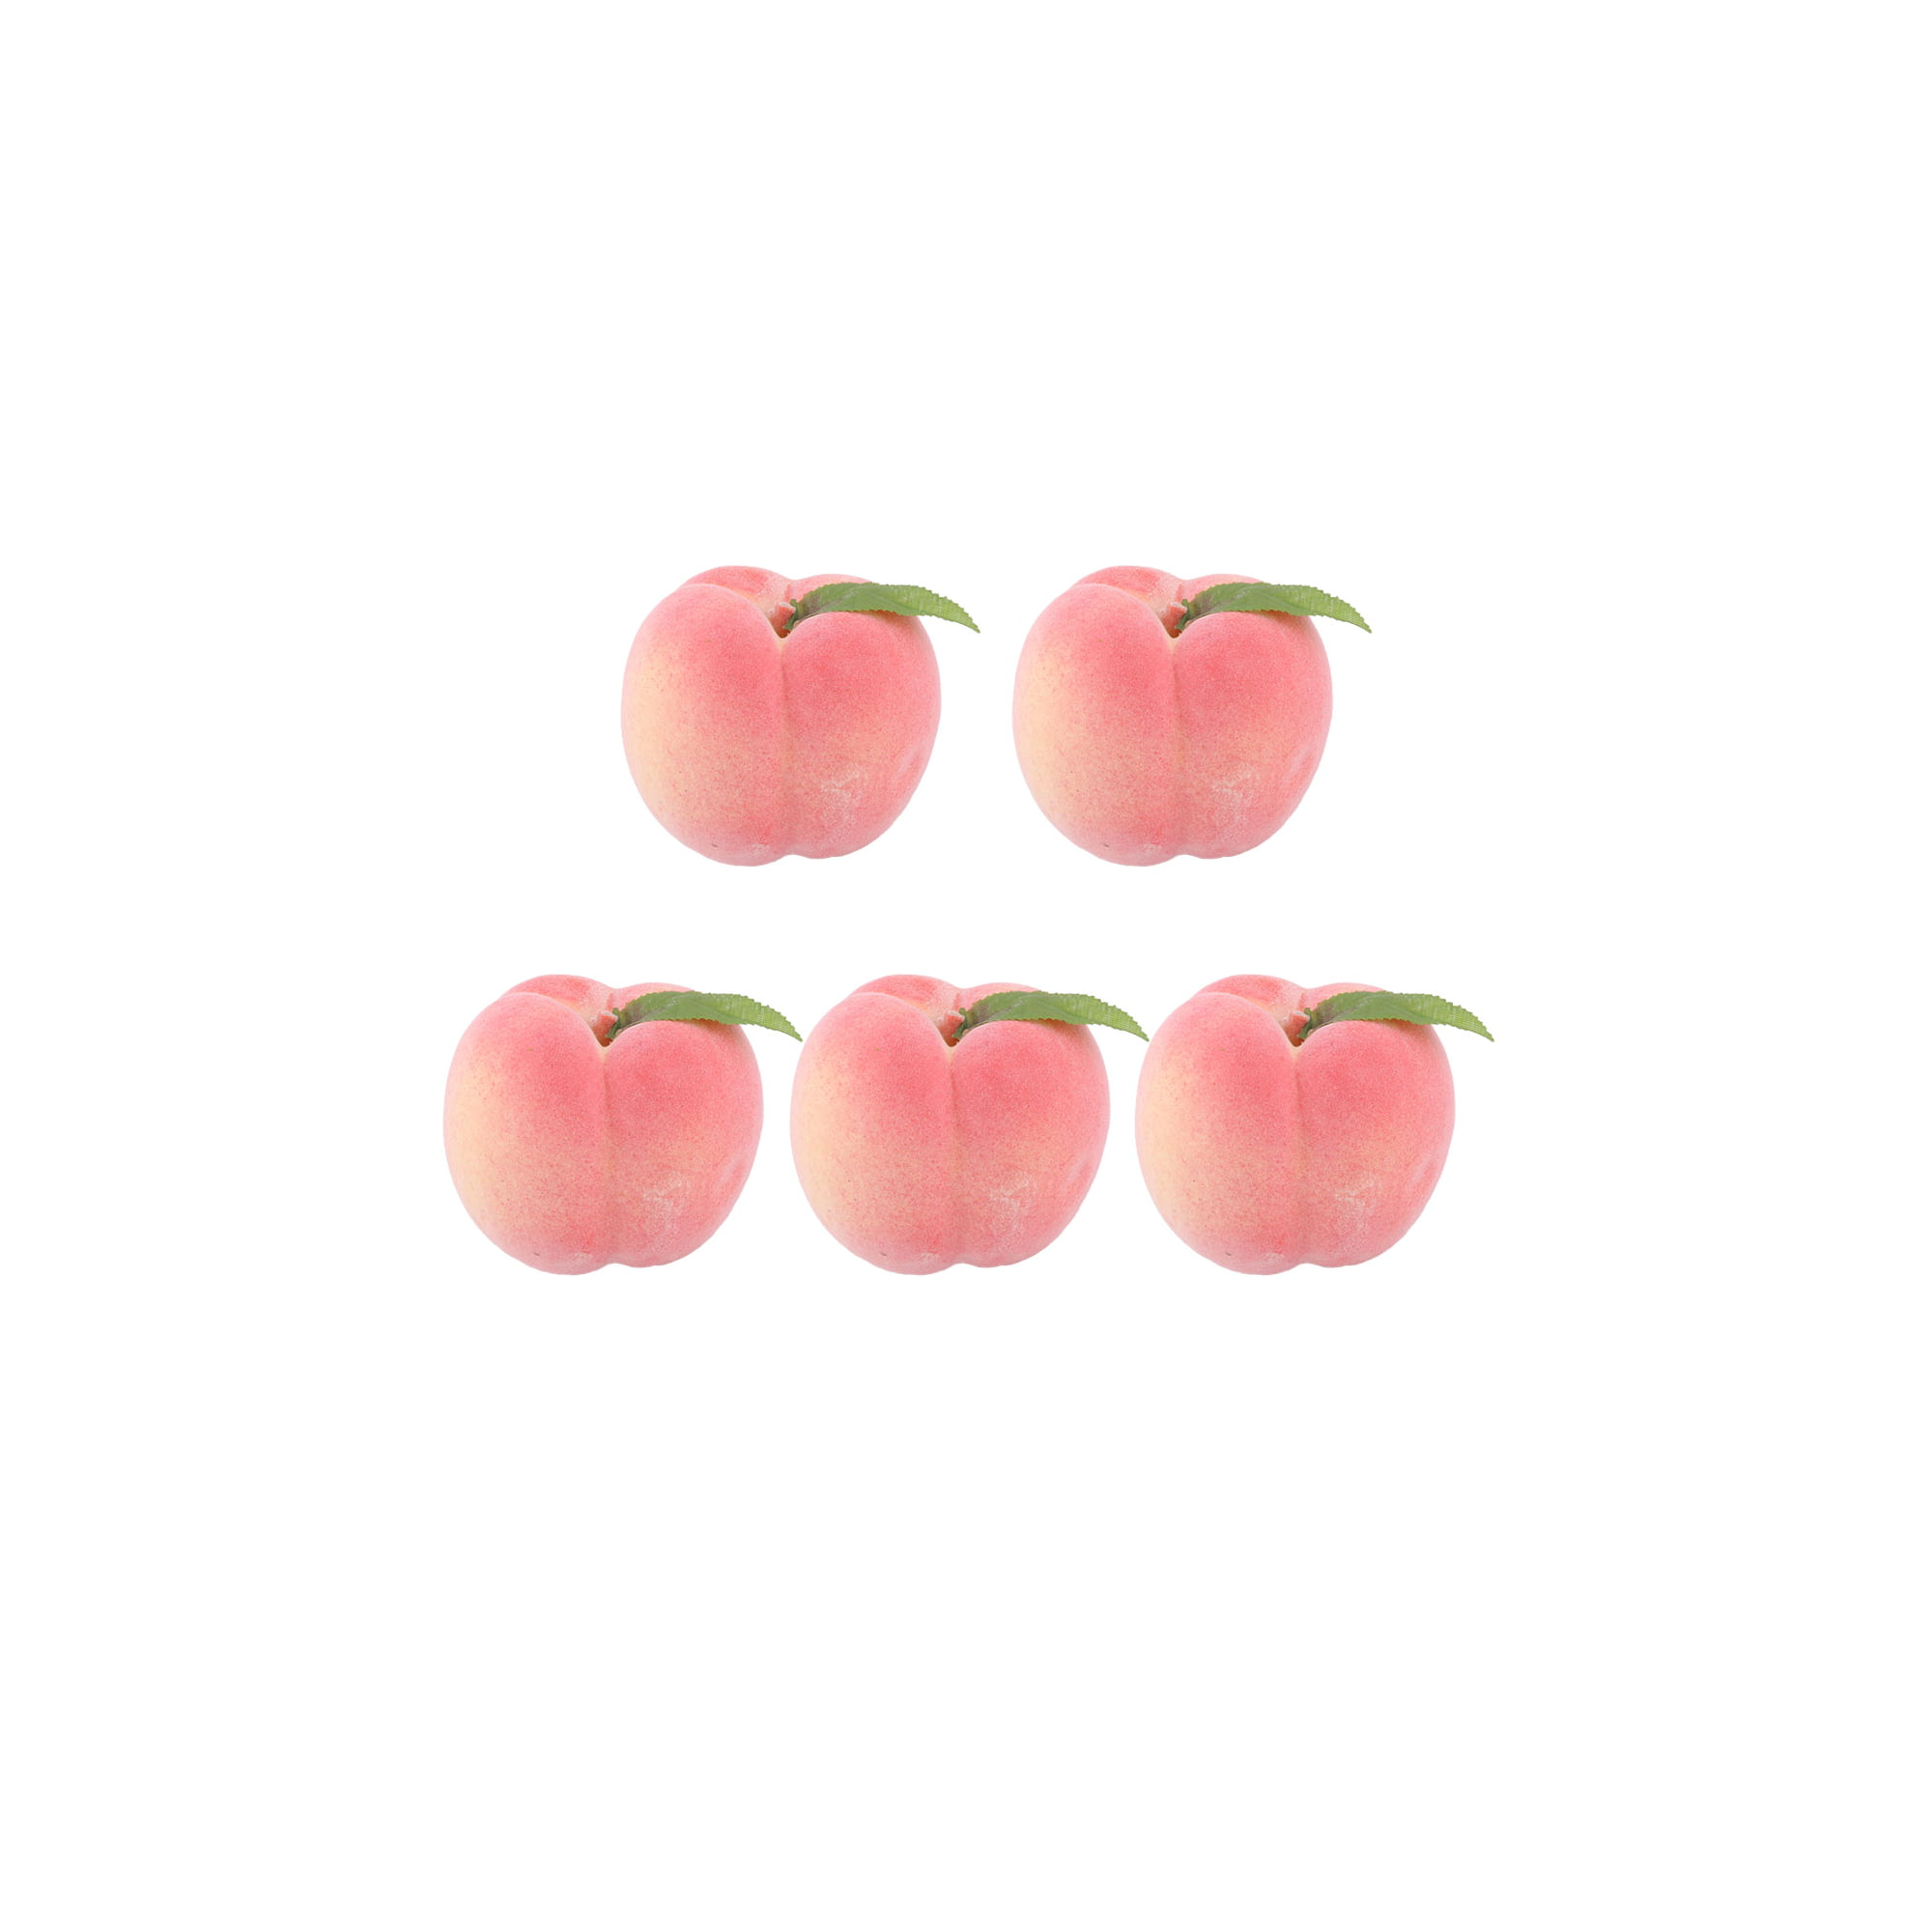 Home Office Decor Foam Lifelike Artificial Emulation Fruit Peach Mold Pink 5pcs Walmart Canada